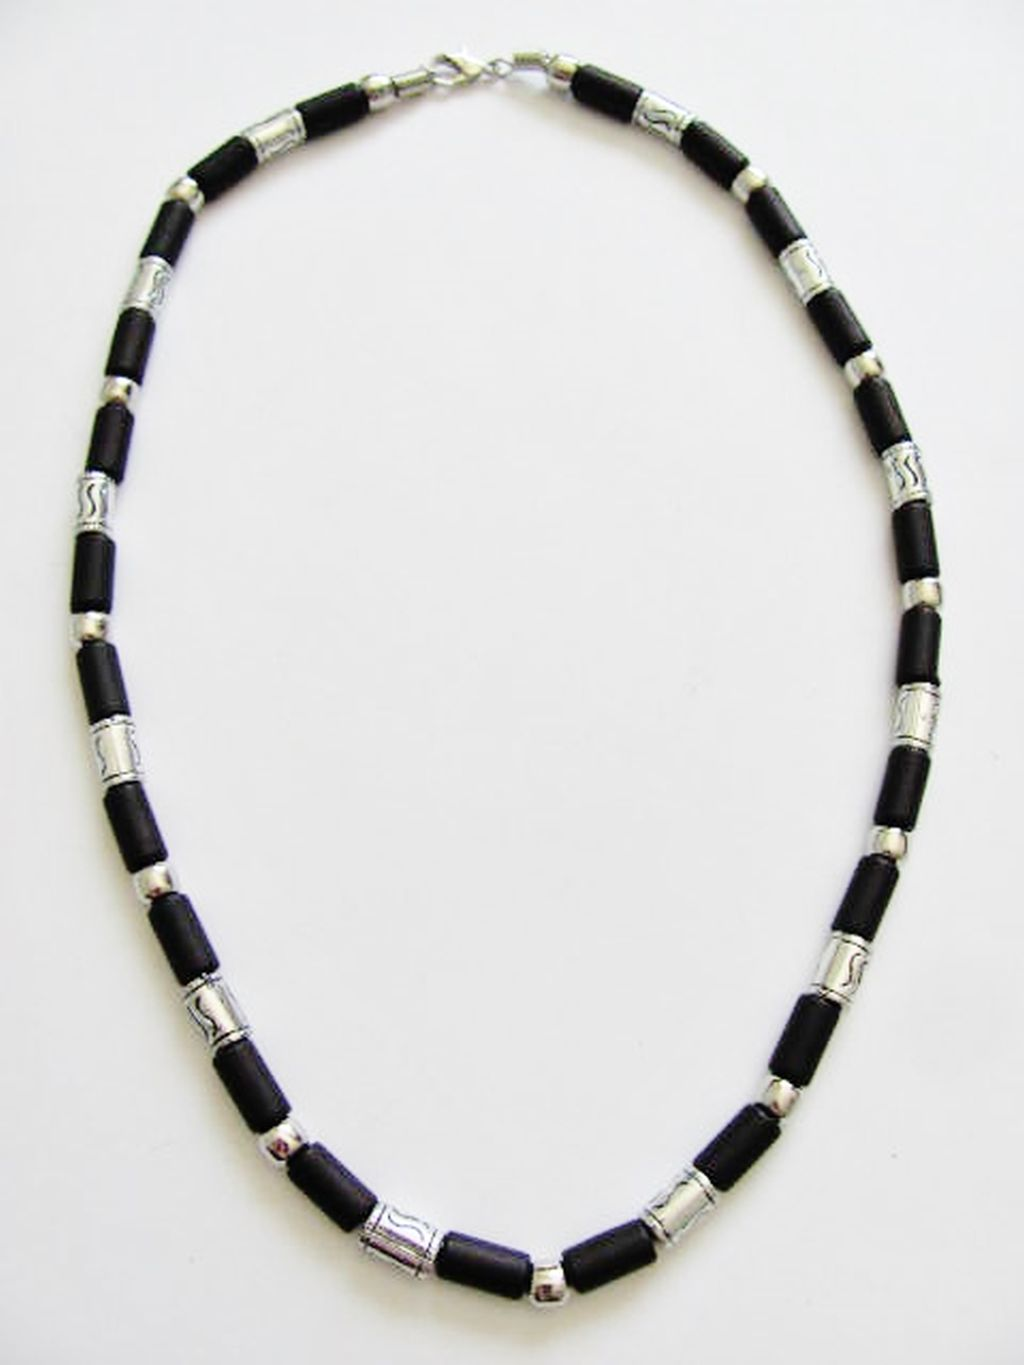 Cancun Hot Chrome/Extreme Black Men's Bead Necklace, Surfer Style